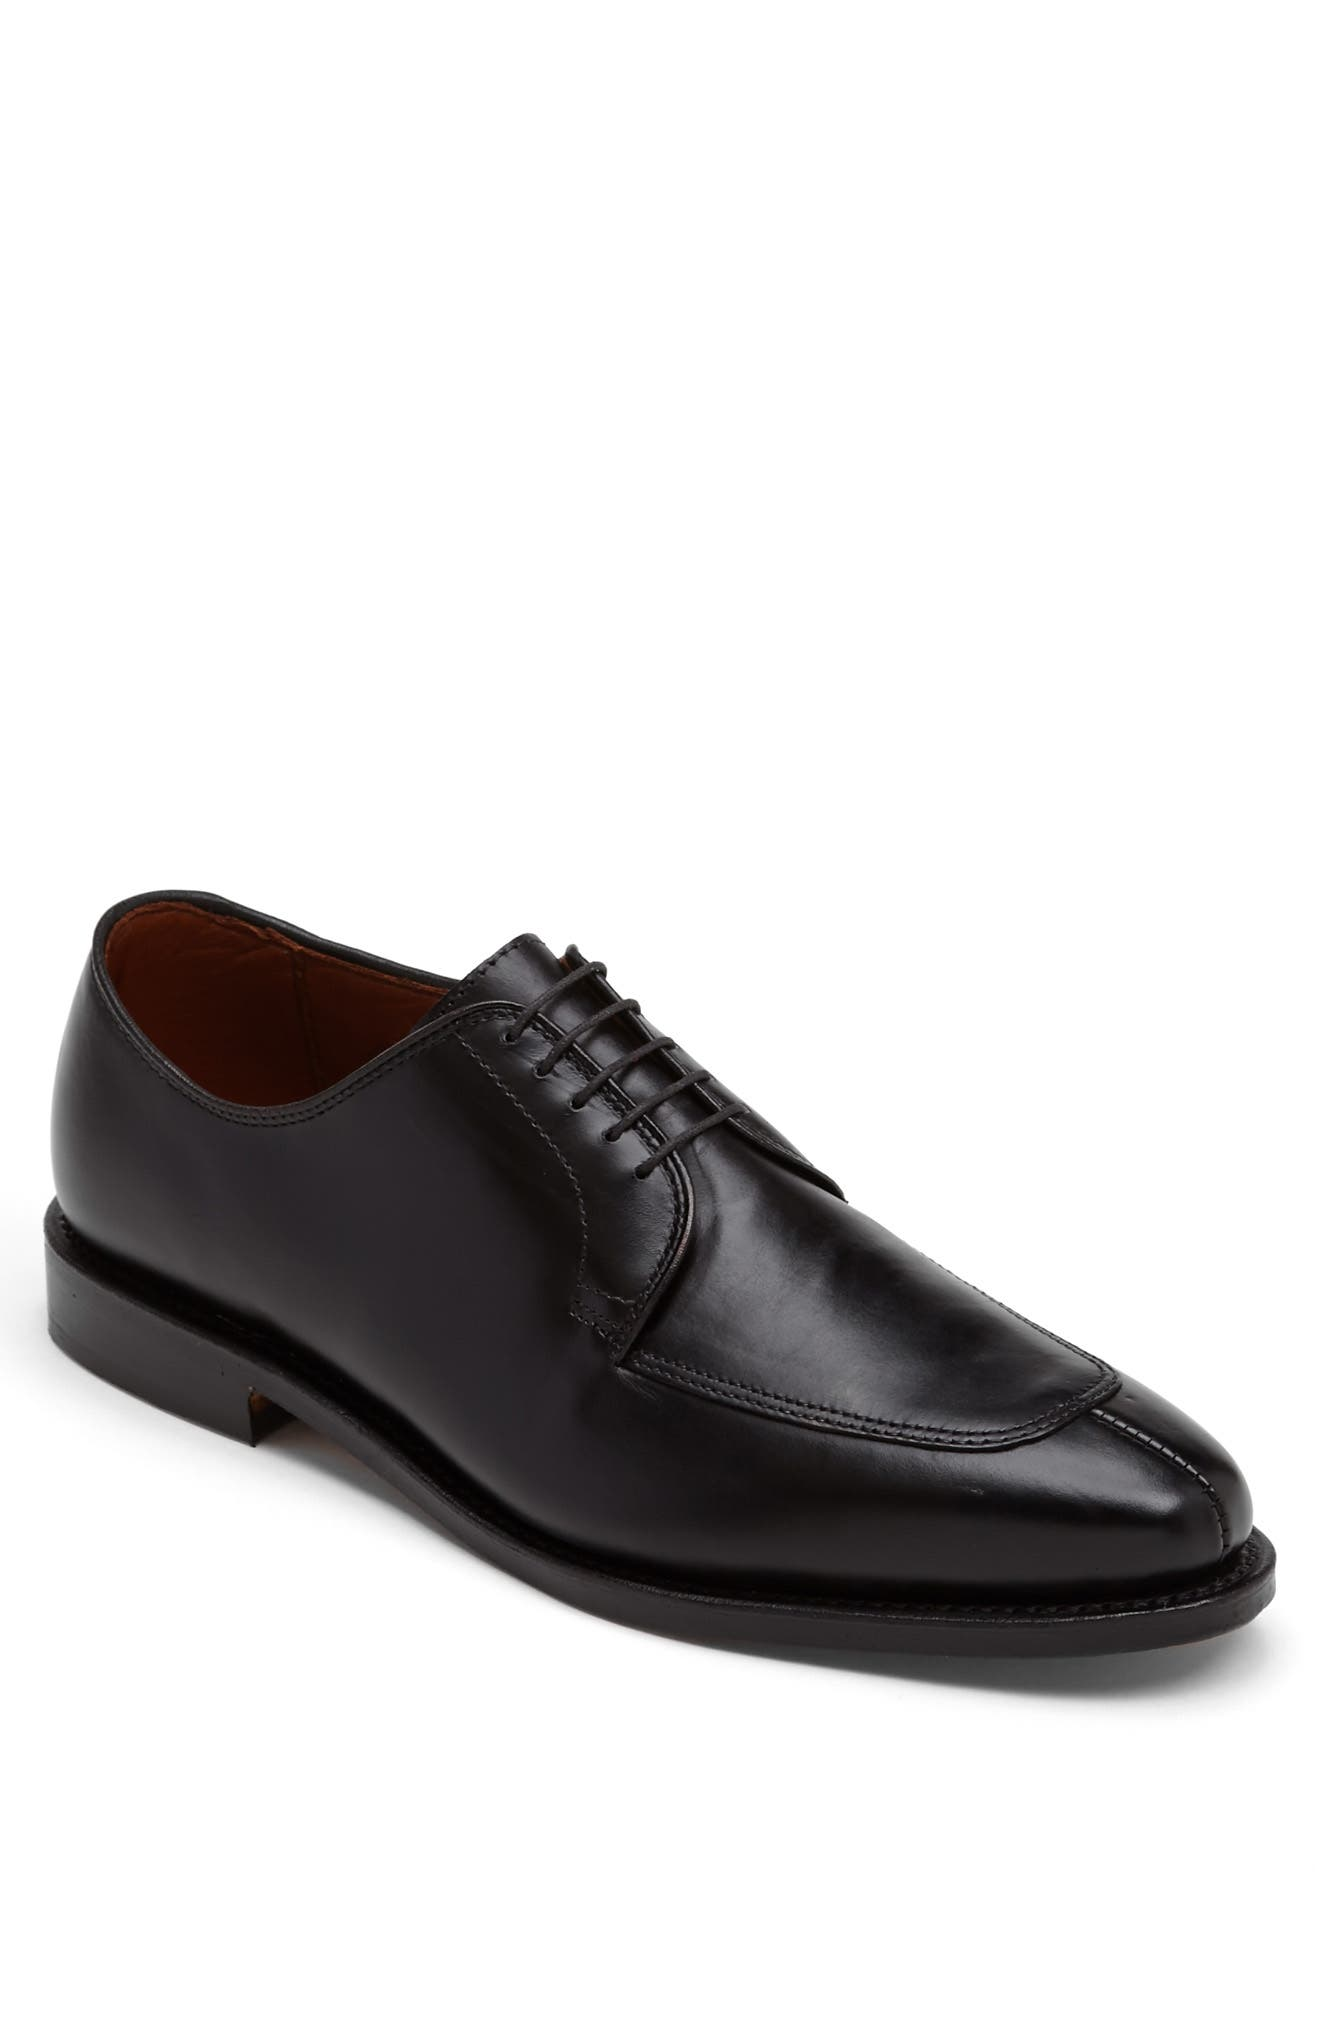 ALLEN EDMONDS, Delray Split Toe Derby, Alternate thumbnail 5, color, BLACK